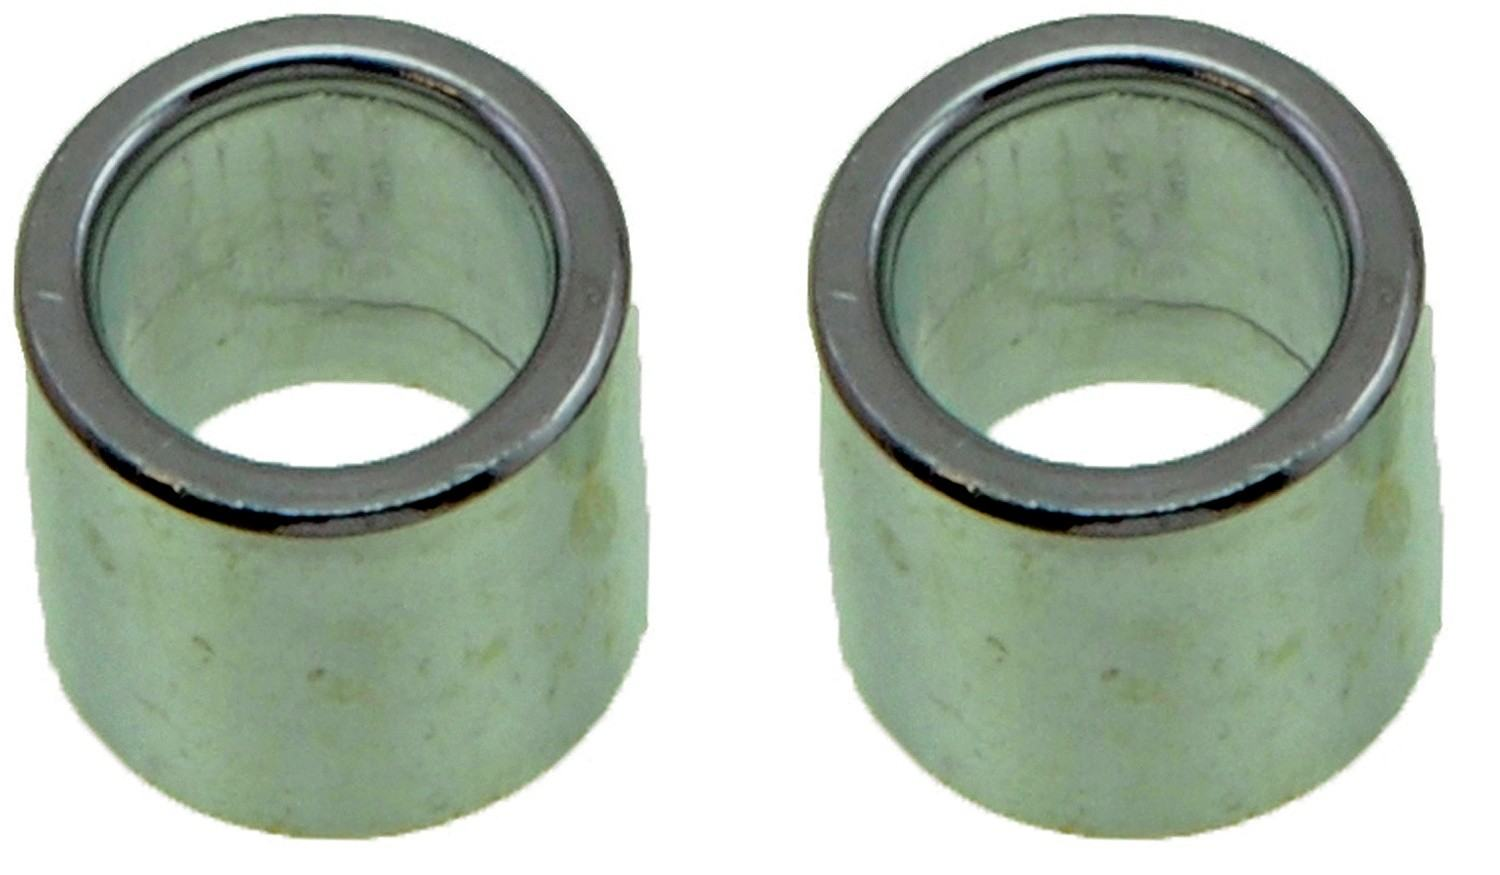 DORMAN - FIRST STOP - Brake Sleeve Stabilizer - DBP HW5103